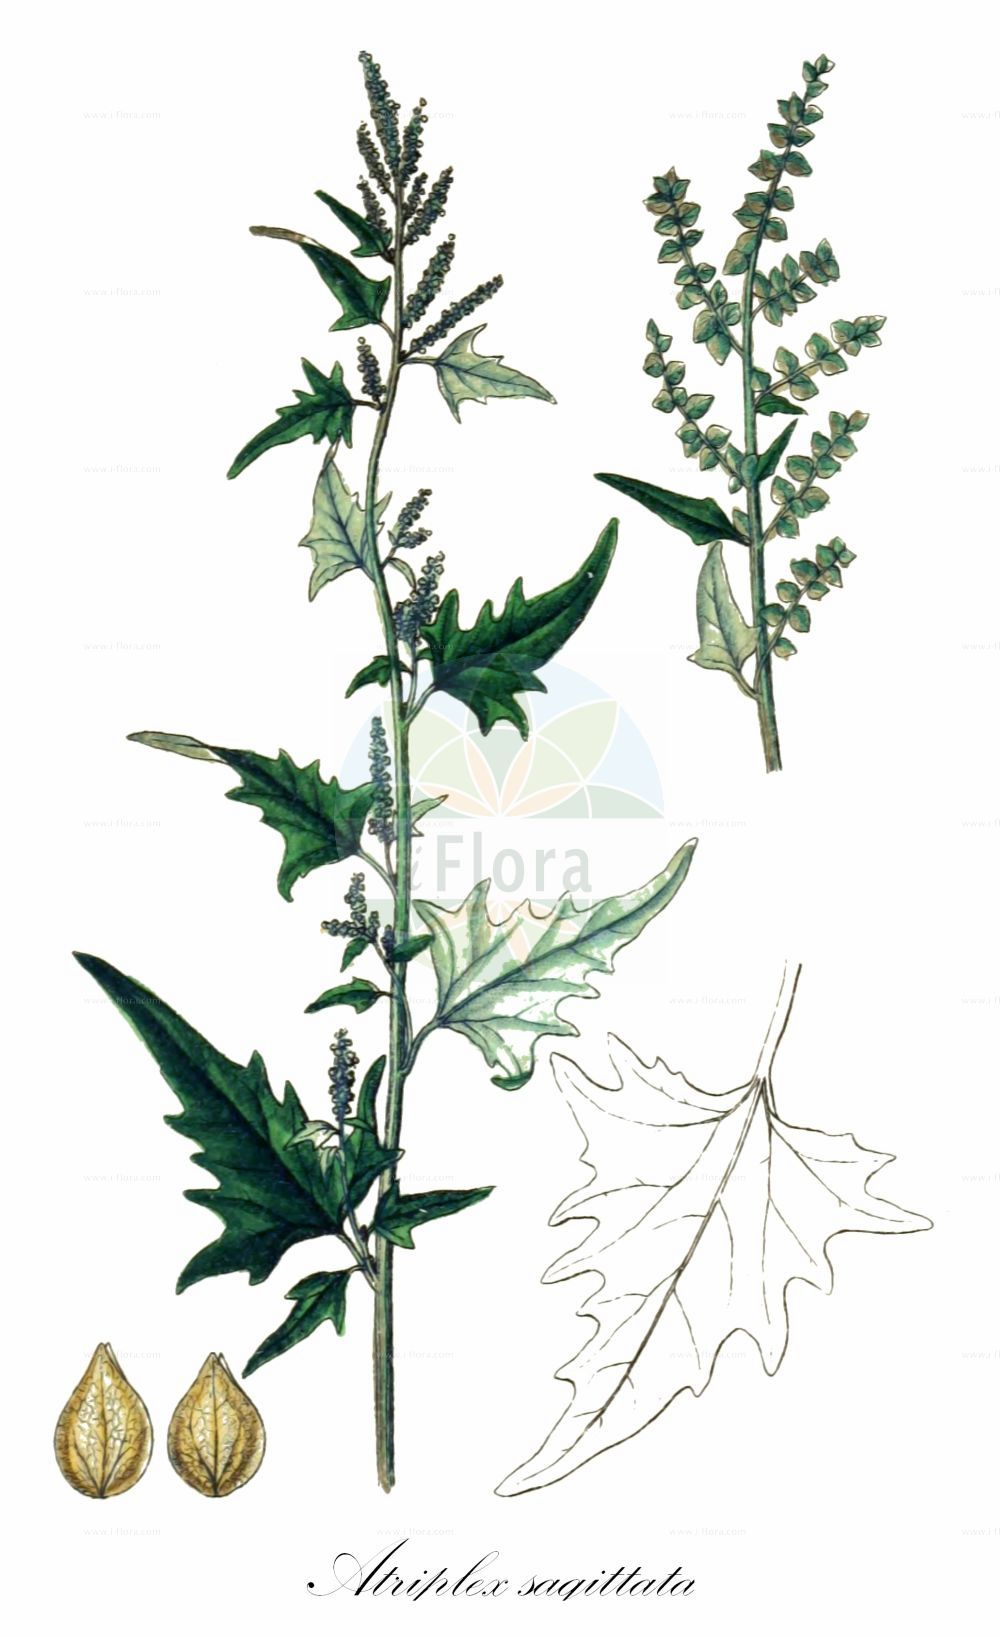 Historische Abbildung von Atriplex sagittata (Glanz-Melde - Purple Orache). Das Bild zeigt Blatt, Bluete, Frucht und Same. ---- Historical Drawing of Atriplex sagittata (Glanz-Melde - Purple Orache).The image is showing leaf, flower, fruit and seed.(Atriplex sagittata,Glanz-Melde,Purple Orache,Atriplex acuminata,Atriplex nitens,,Atriplex,Melde,Saltbush,Amaranthaceae,Fuchsschwanzgewaechse,Pigweed family,Blatt,Bluete,Frucht,Same,leaf,flower,fruit,seed,Sturm (1796f))